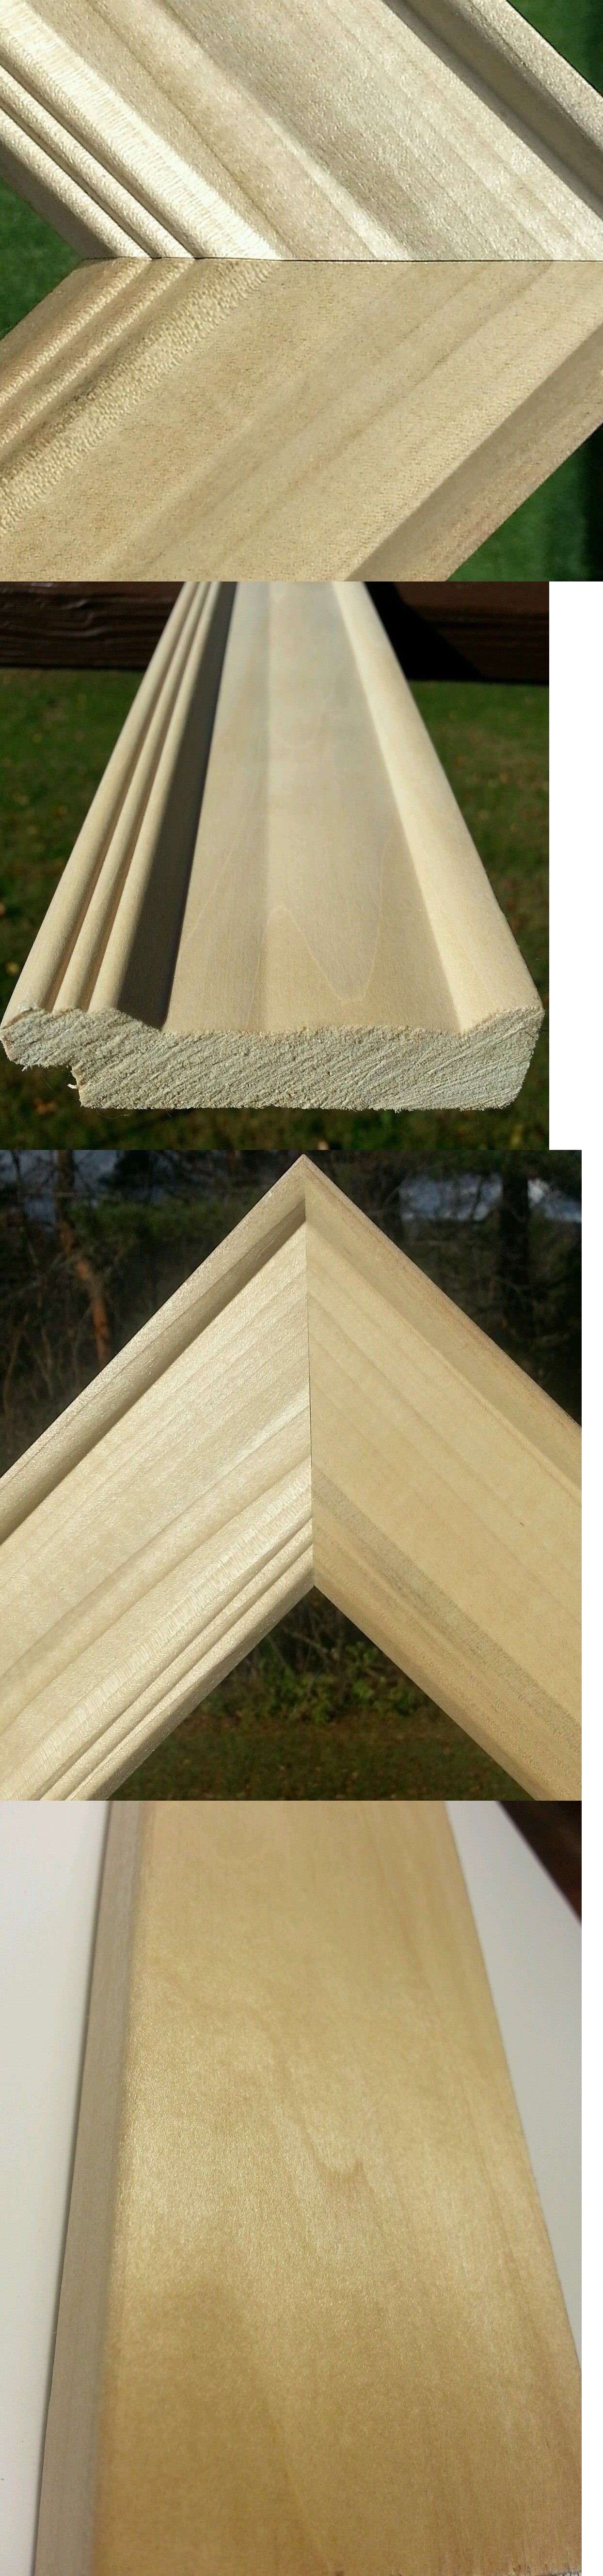 Frames and Supplies 37575: 40 Ft - Wide Raw Unfinished Wood Picture ...